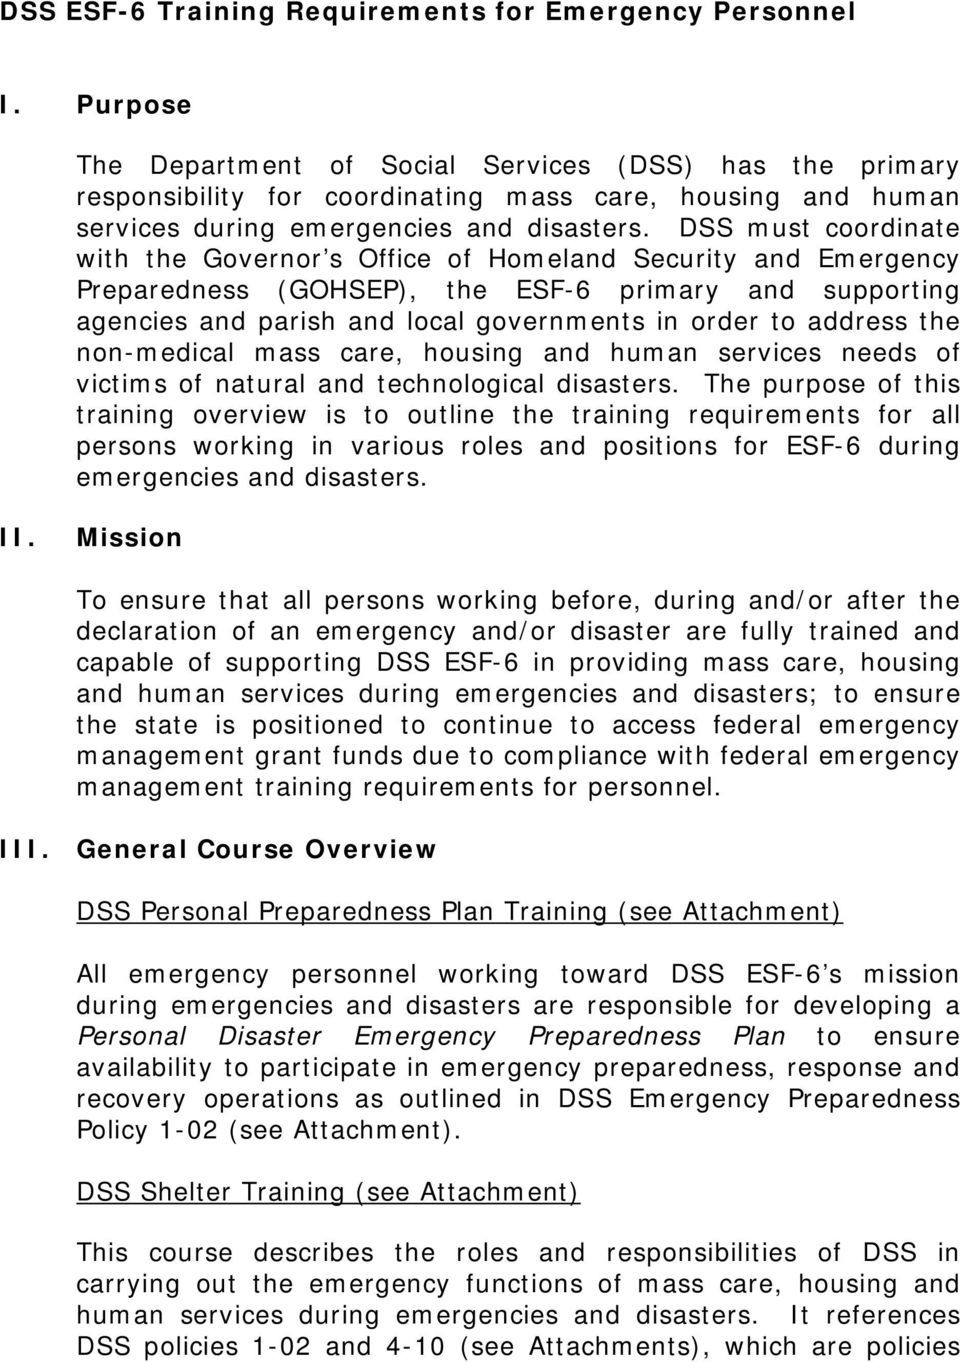 DSS must coordinate with the Governor s Office of Homeland Security and Emergency Preparedness (GOHSEP), the ESF-6 primary and supporting agencies and parish and local governments in order to address